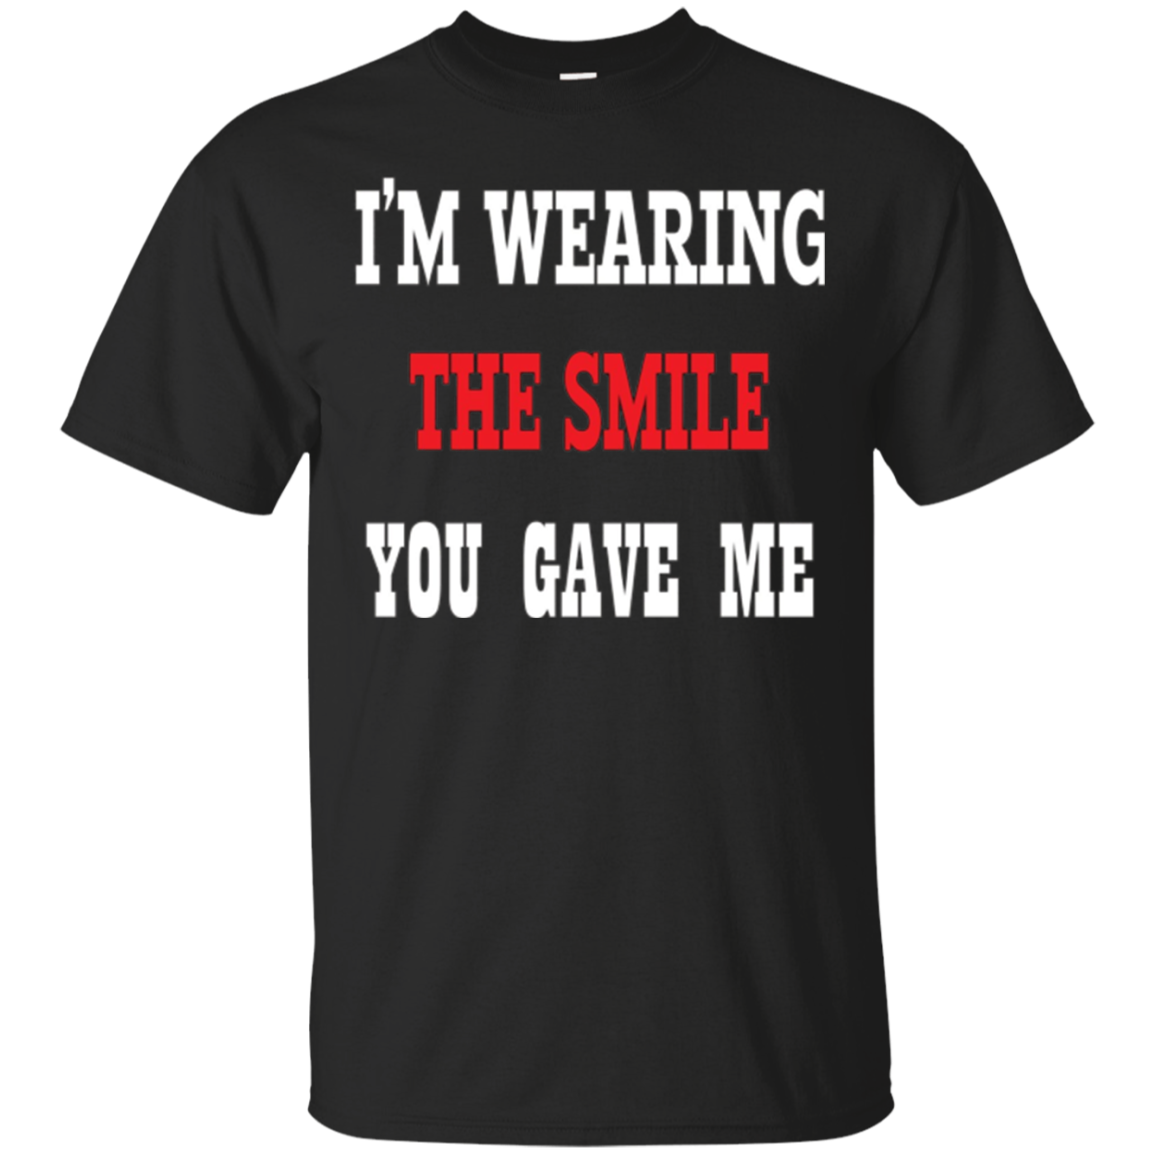 I'M WEARING THE SMILE YOU GAVE ME T-shirt